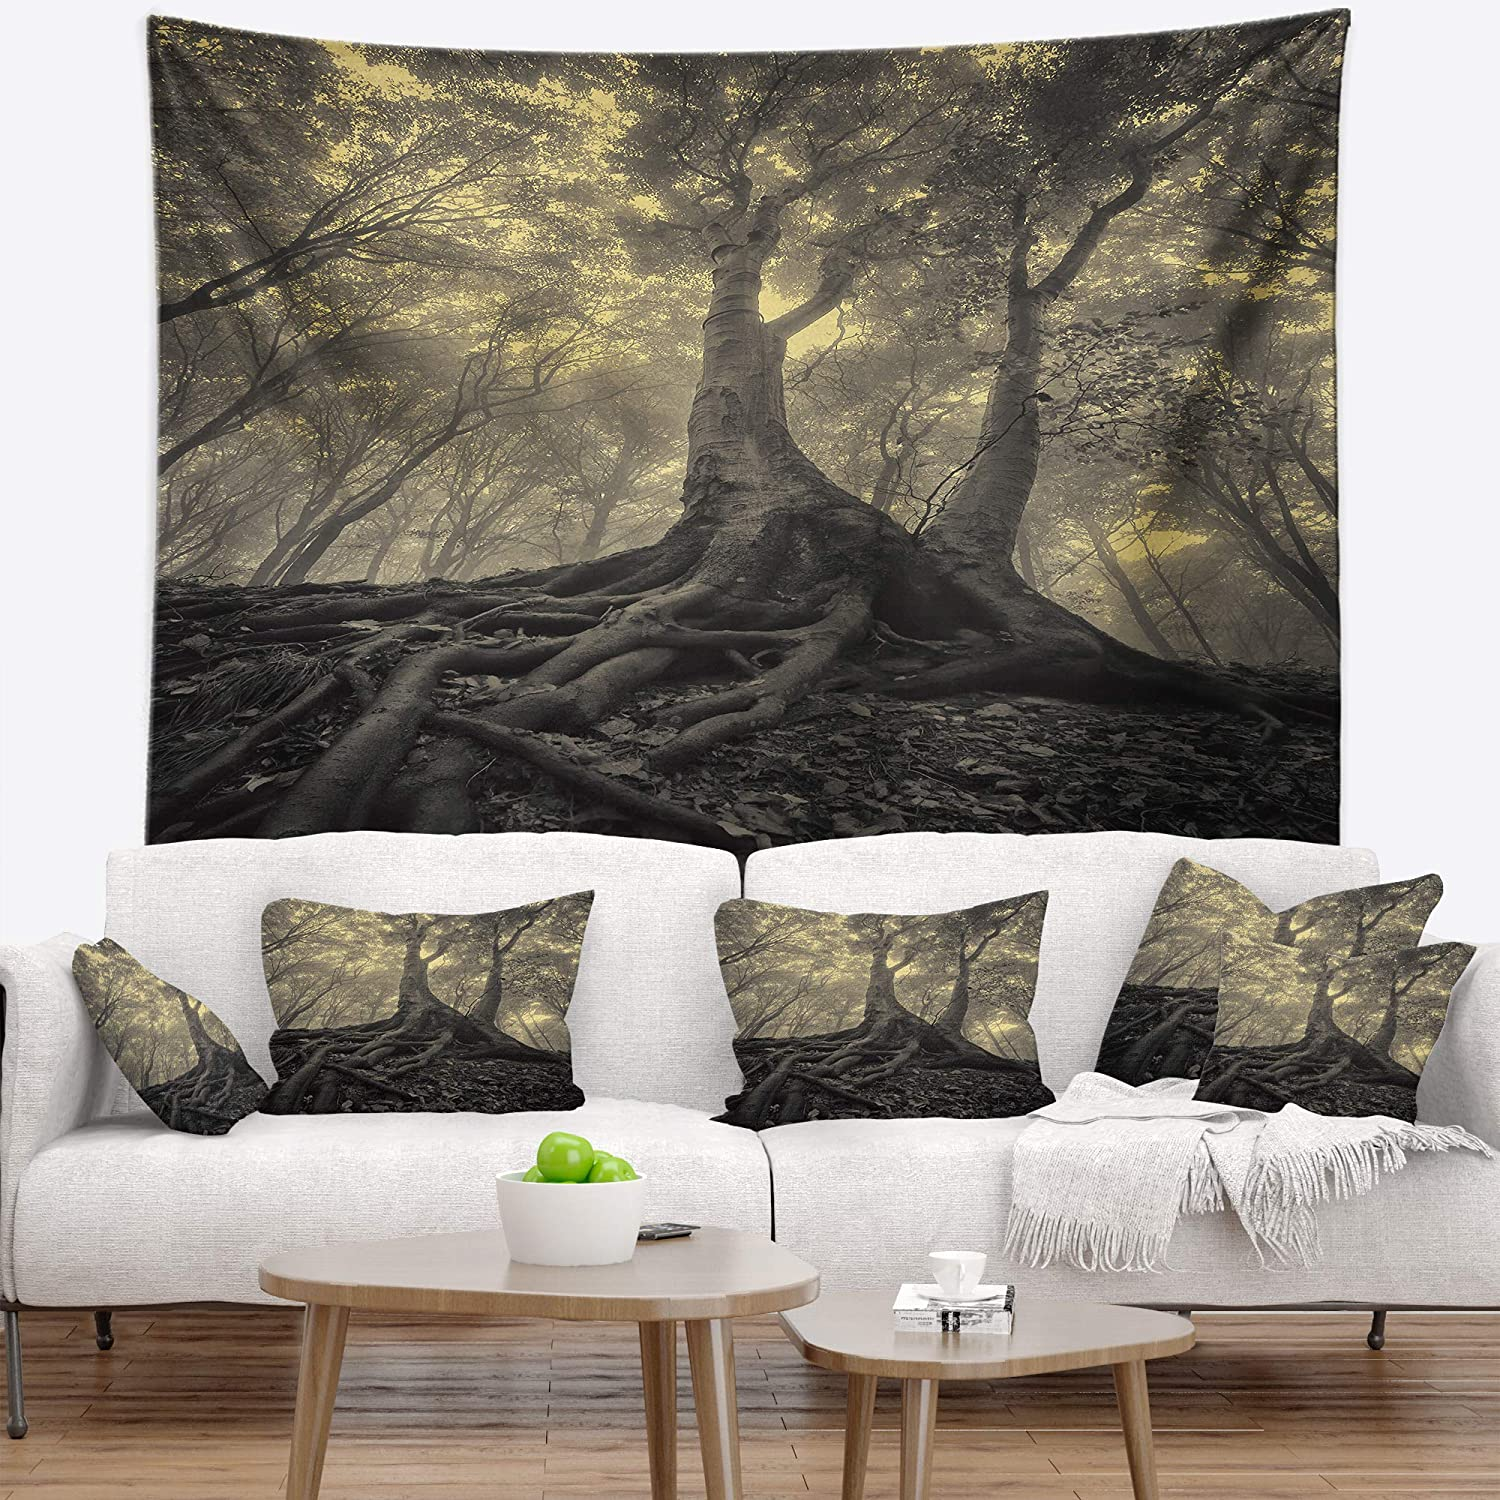 Designart TAP9760-32-39 'Tree with Big Roots on Halloween' Landscape Photography Tapestry Blanket Décor Wall Art for Home and Office, Medium  32 in. x 39 in. , Created on Lightweight Polyester Fabric